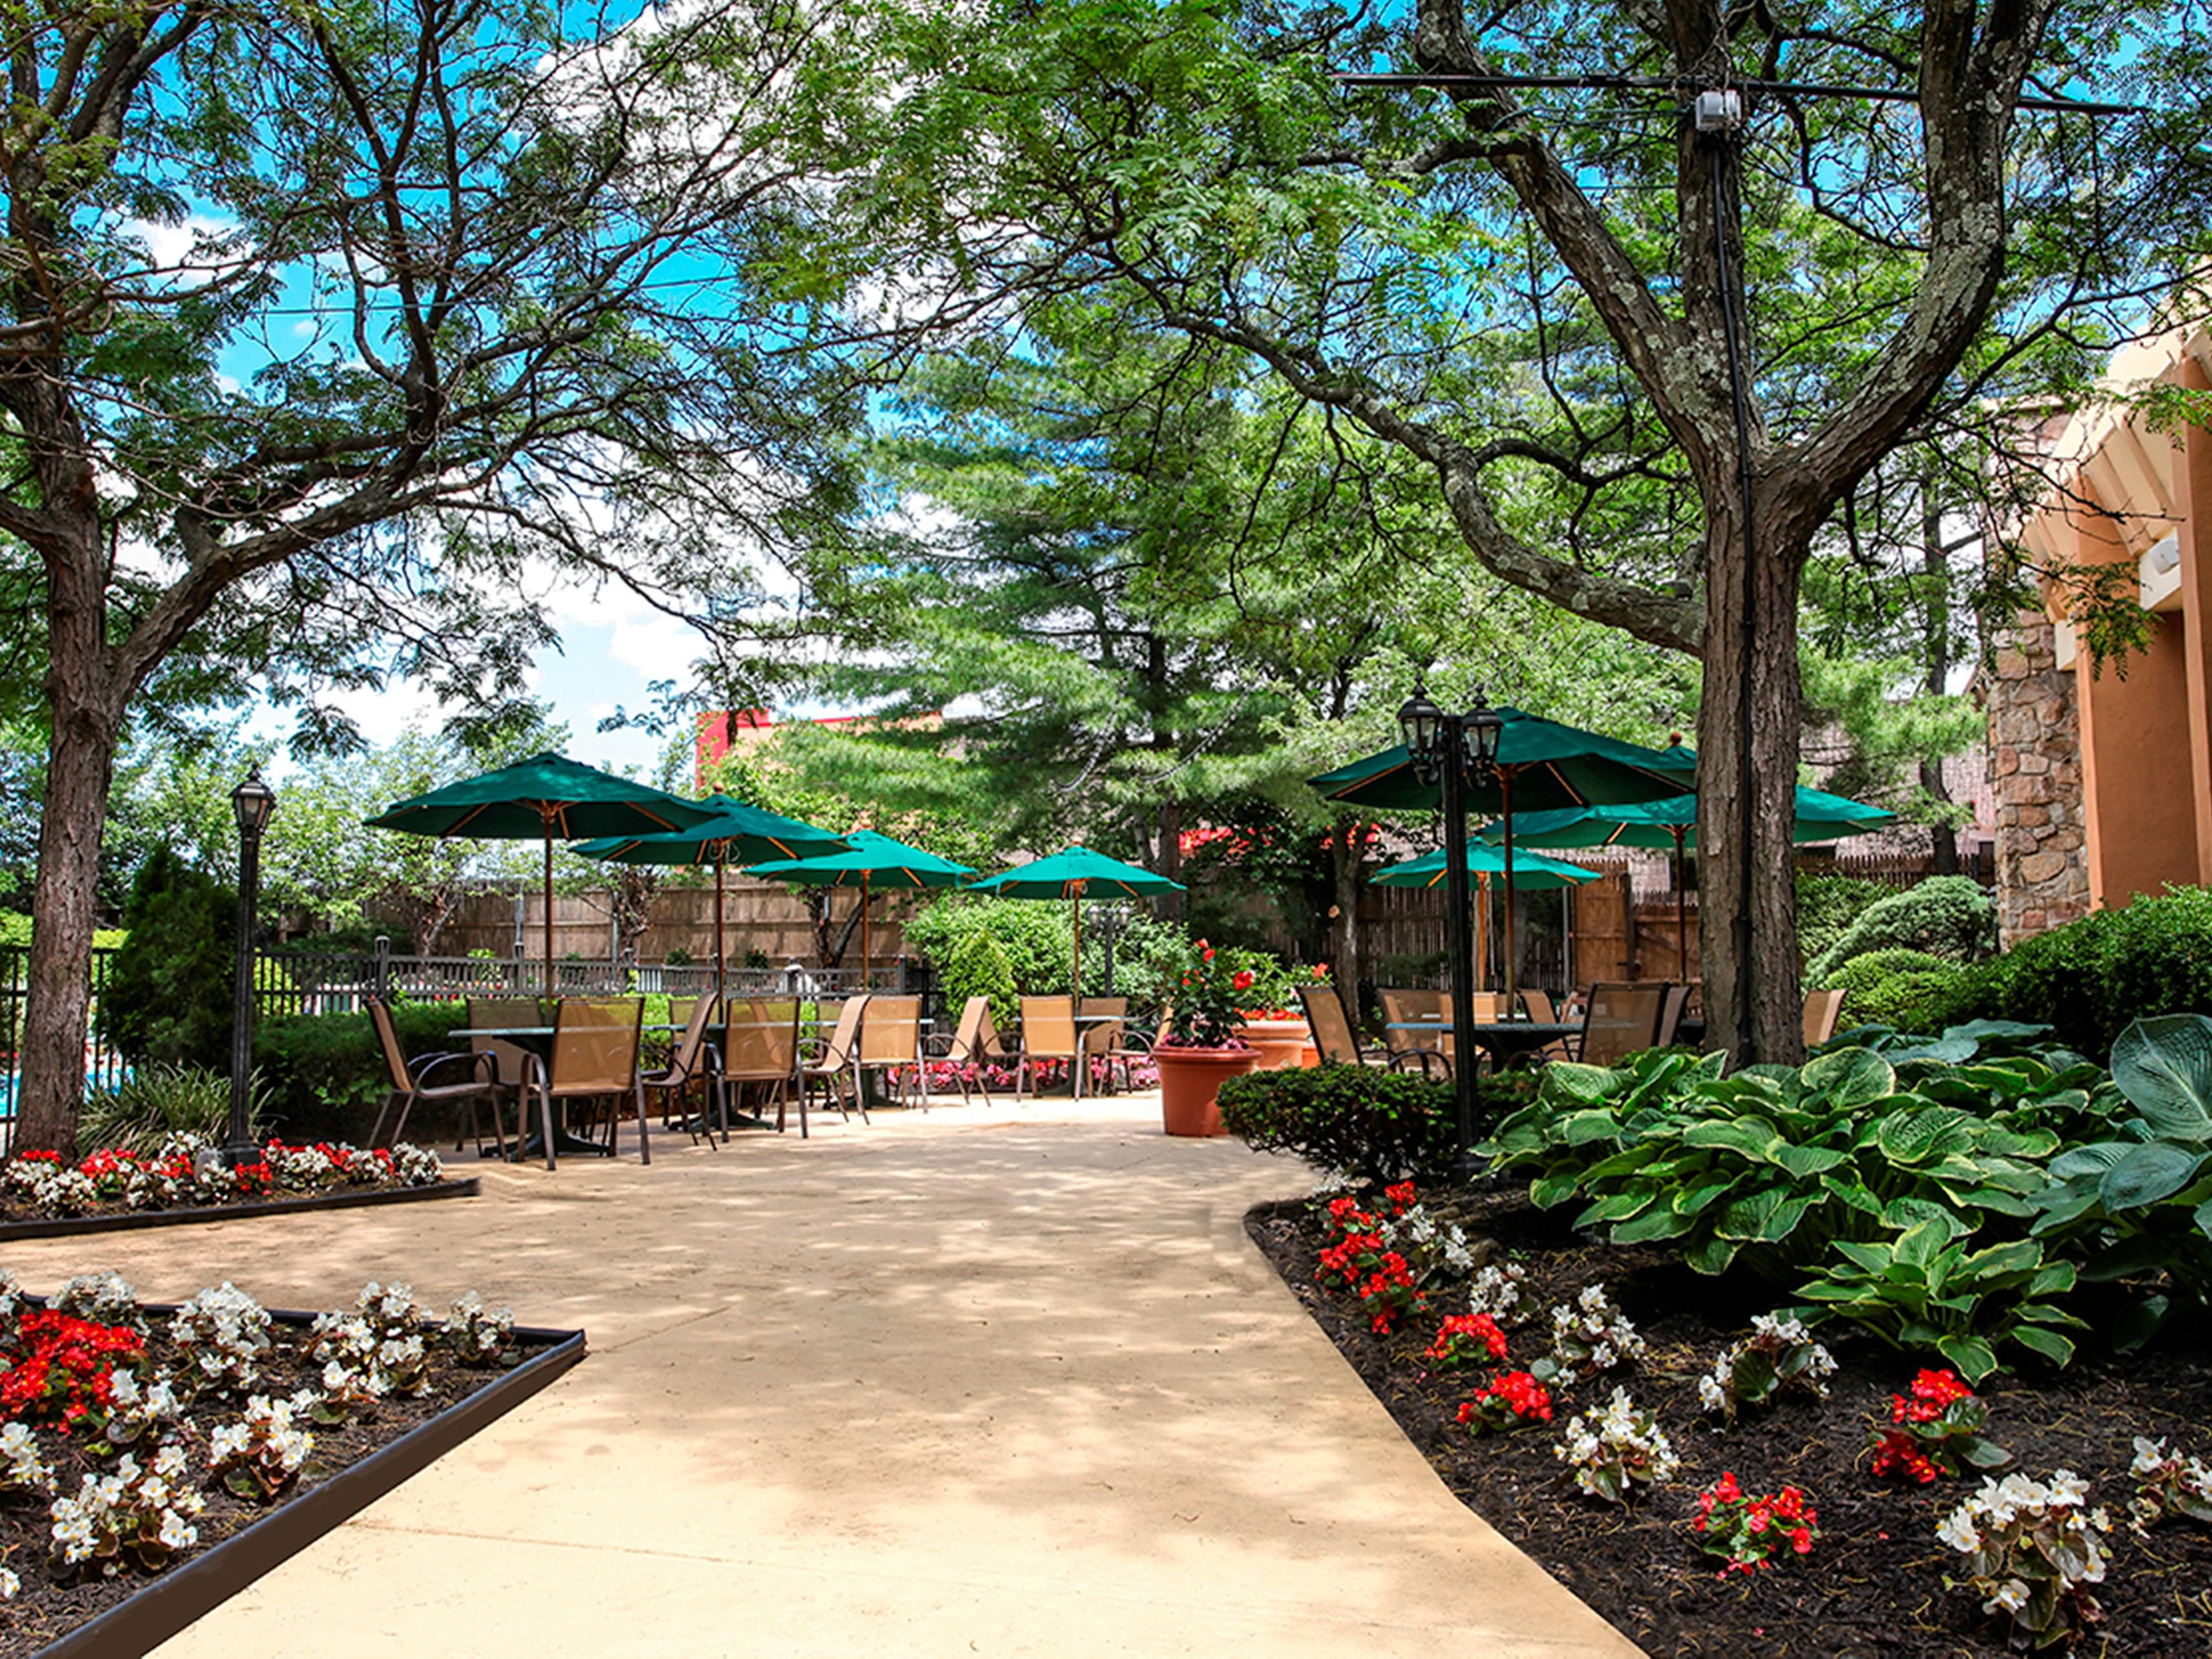 Enjoy a relaxing day in our garden courtyard